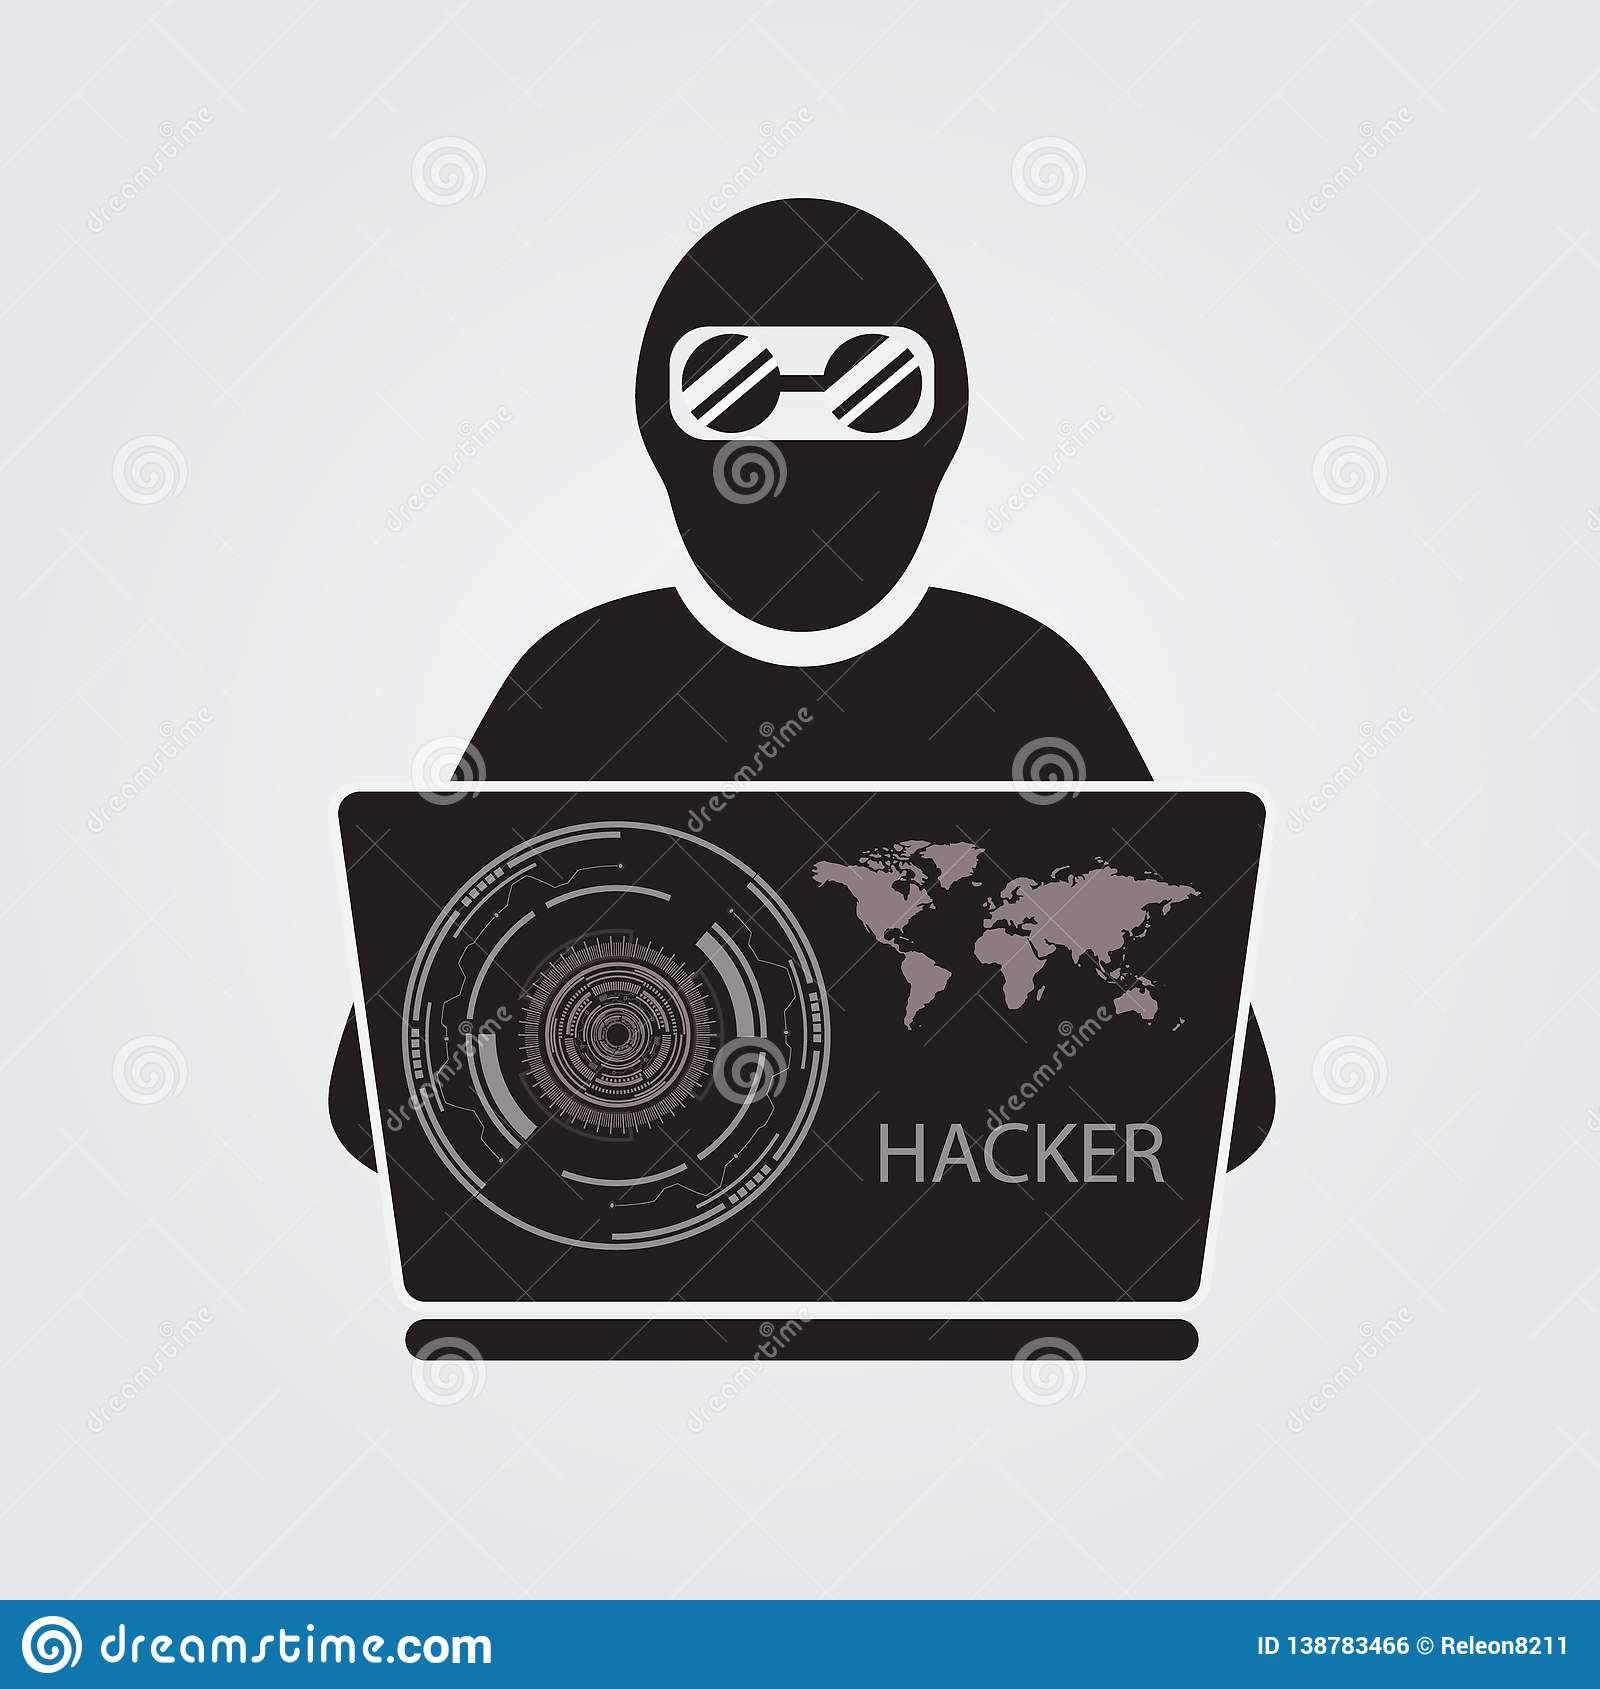 caeeef3f Icon Hacker Stock Illustrations – 17,555 Icon Hacker Stock Illustrations,  Vectors & Clipart - Dreamstime